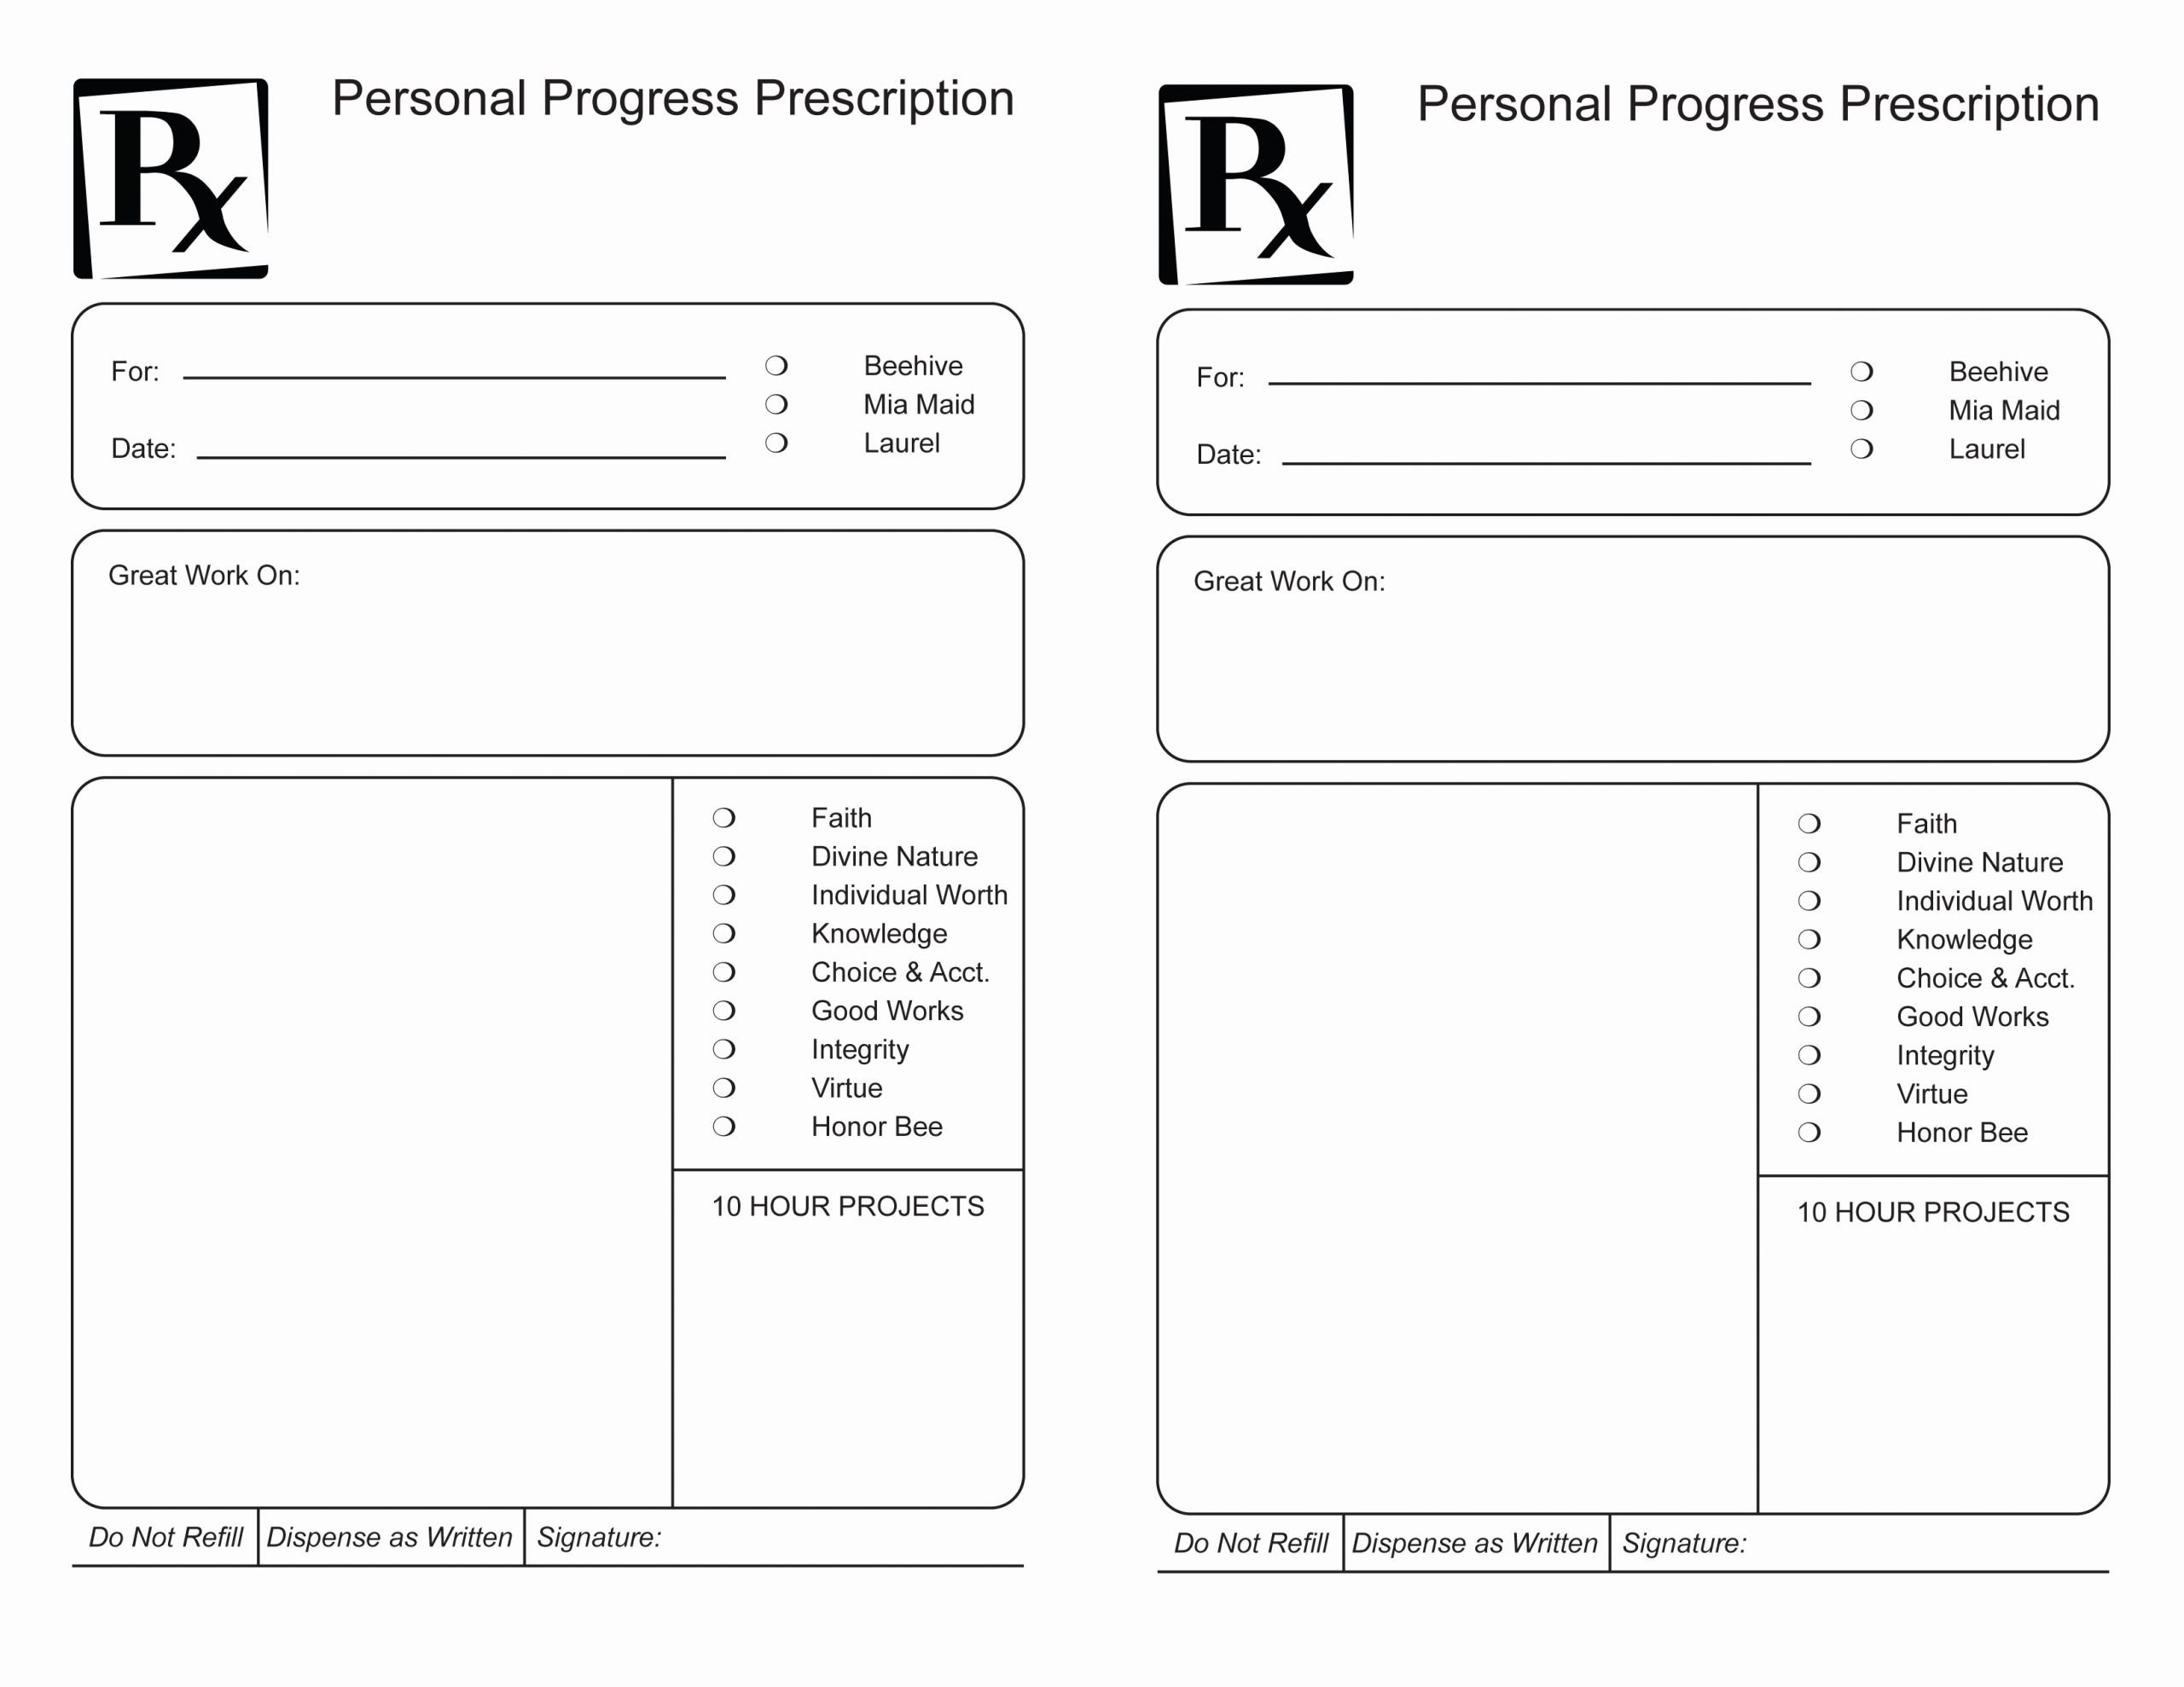 Prescription Pad Template Microsoft Word Fresh Personal Progress Prescription Pad – the Gospel Home